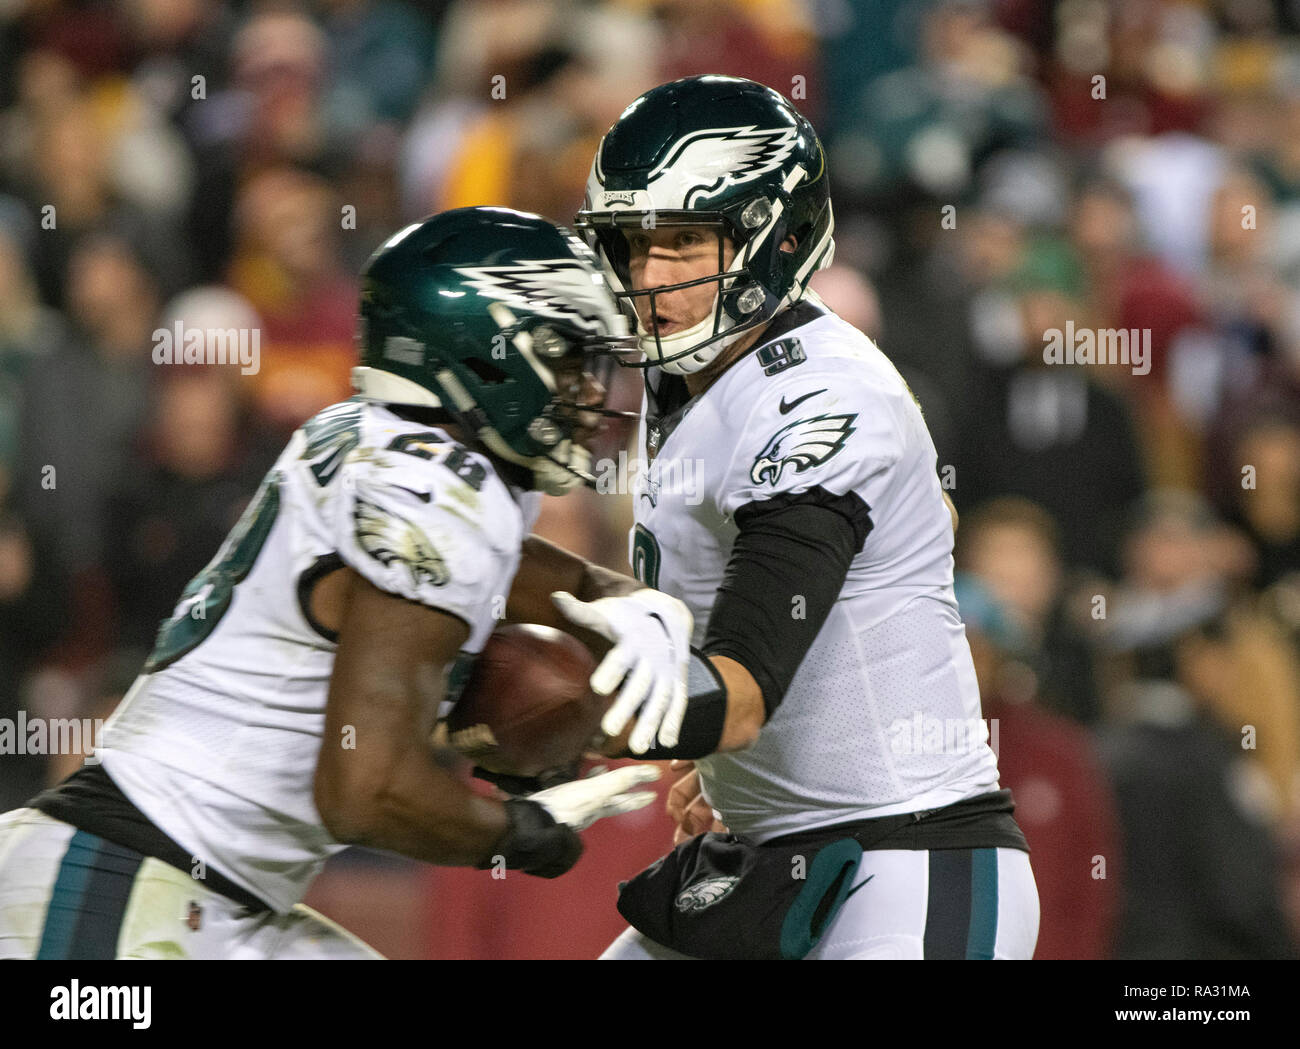 Philadelphia Eagles quarterback Nick Foles (9) hands-off to running back Wendell Smallwood (28) in fourth quarter action against the Washington Redskins at FedEx Field in Landover, Maryland on December 30, 2018. The Eagles won the game 24 - 0 and their victory coupled with the Viking loss allowed them to advance to the NFC playoffs. Credit: Ron Sachs/CNP | usage worldwide - Stock Image